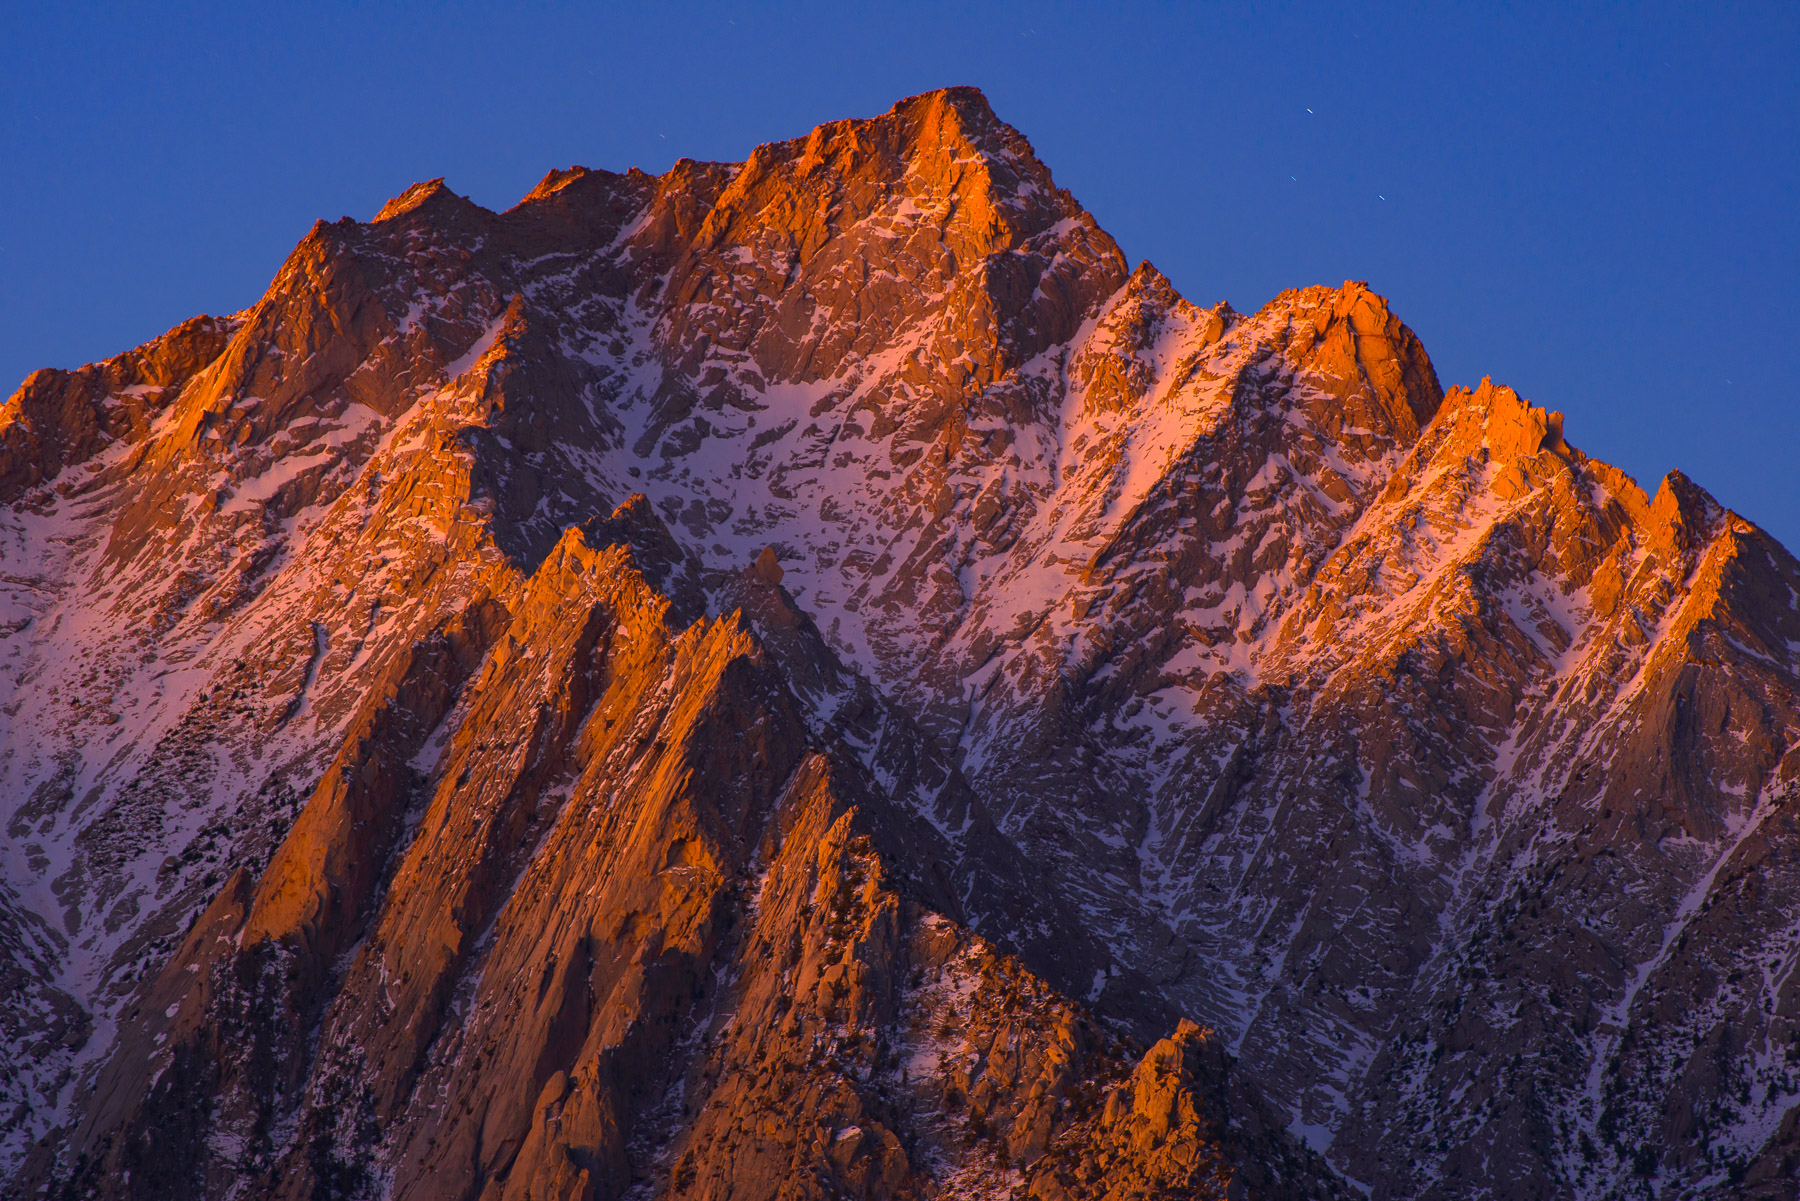 The rugged and towering Lone Pine Peak bathed in Alpenglow, Eastern Sierra Mountains, California. Available Print Sizes: 12x18...